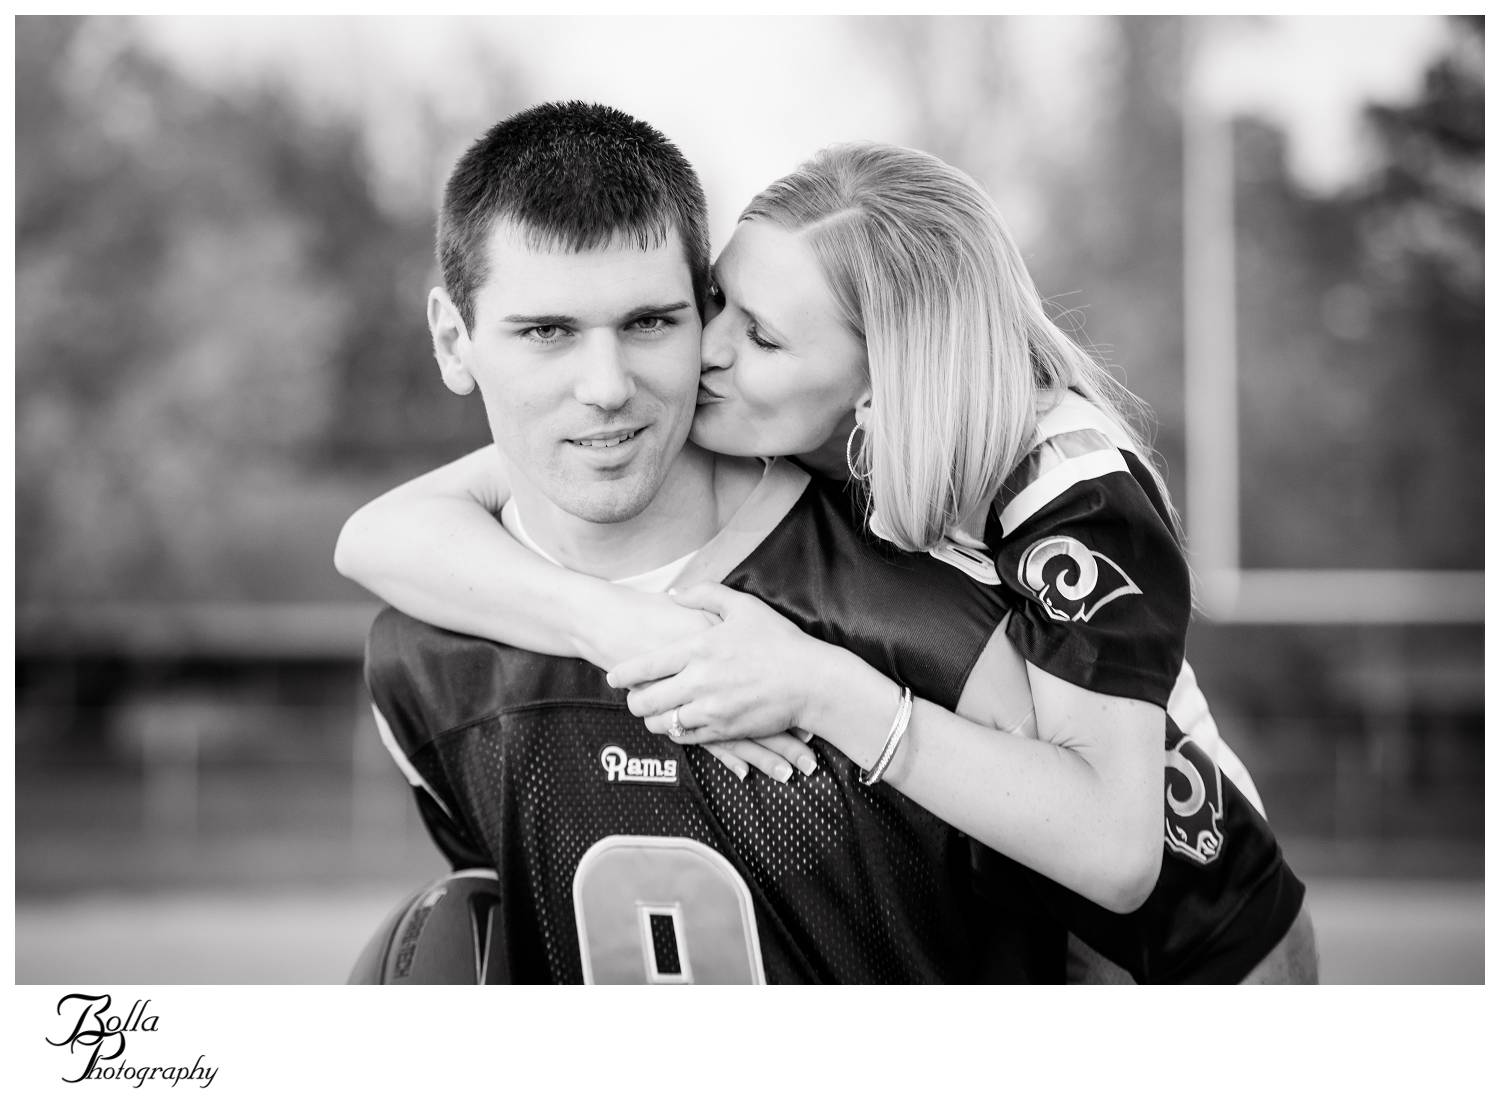 winner4_engagement-football-field-jersey-kiss-fiance-couple